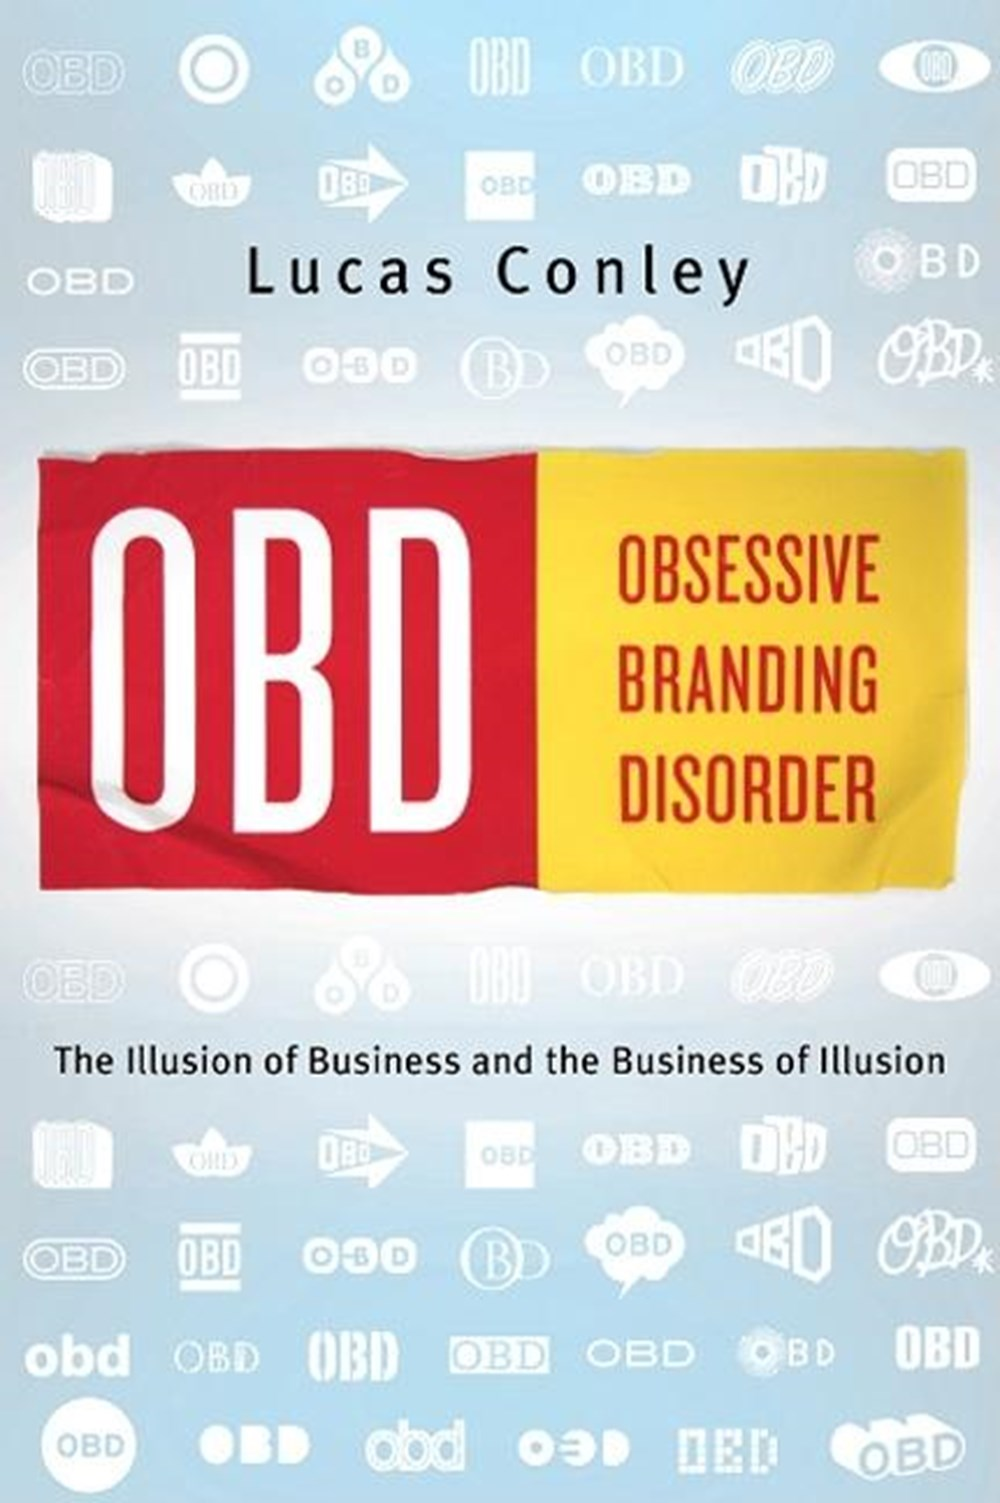 OBD Obsessive Branding Disorder: The Business of Illusion and the Illusion of Business